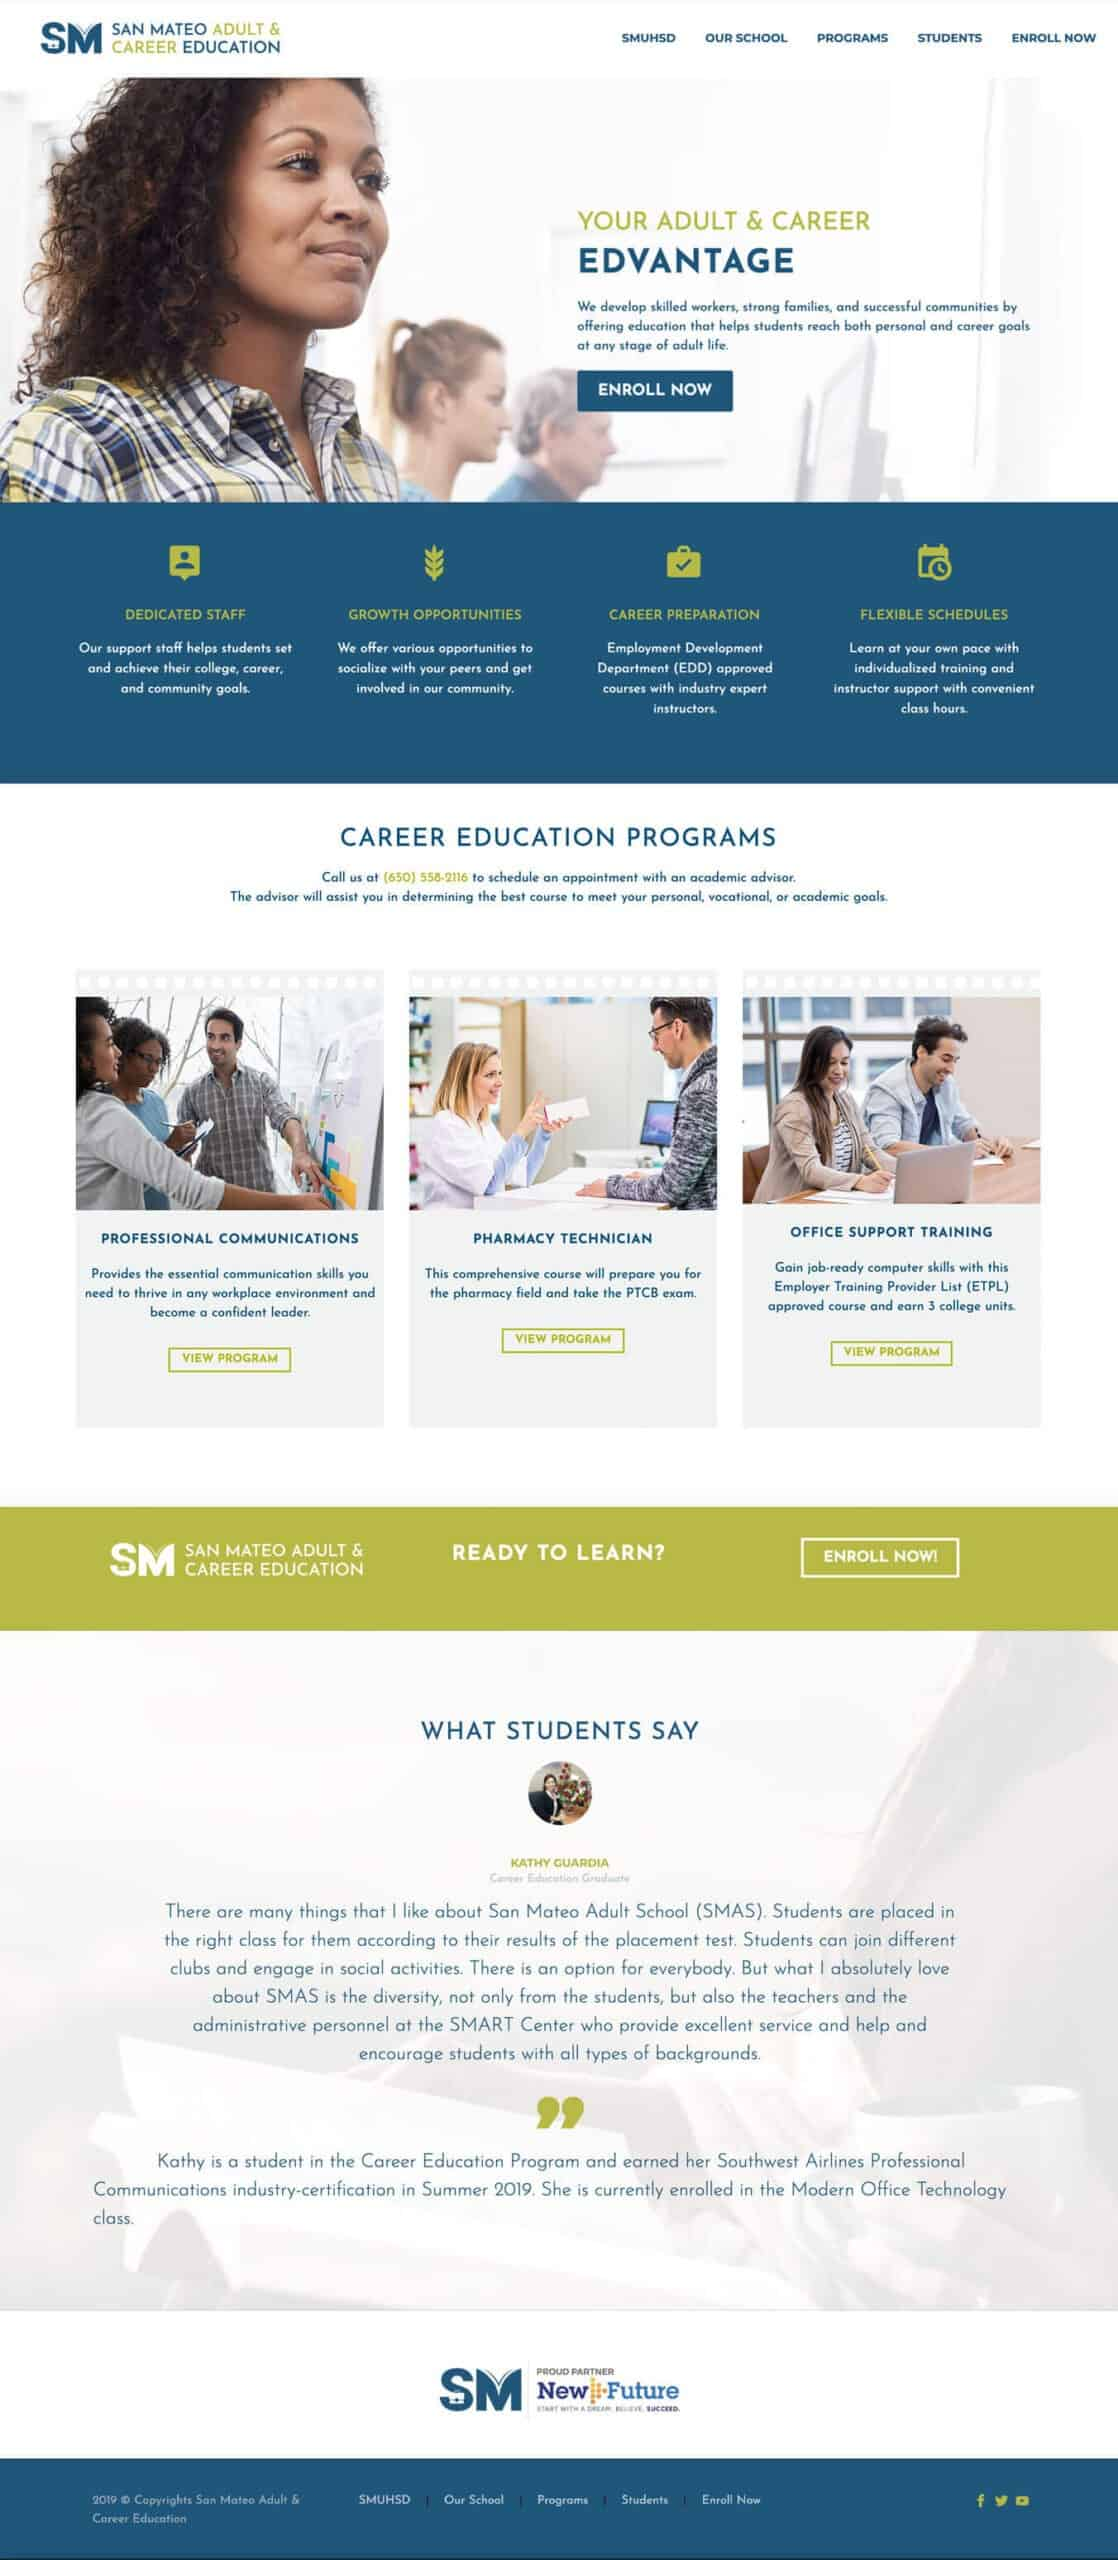 San Mateo Adult & Career Education Web